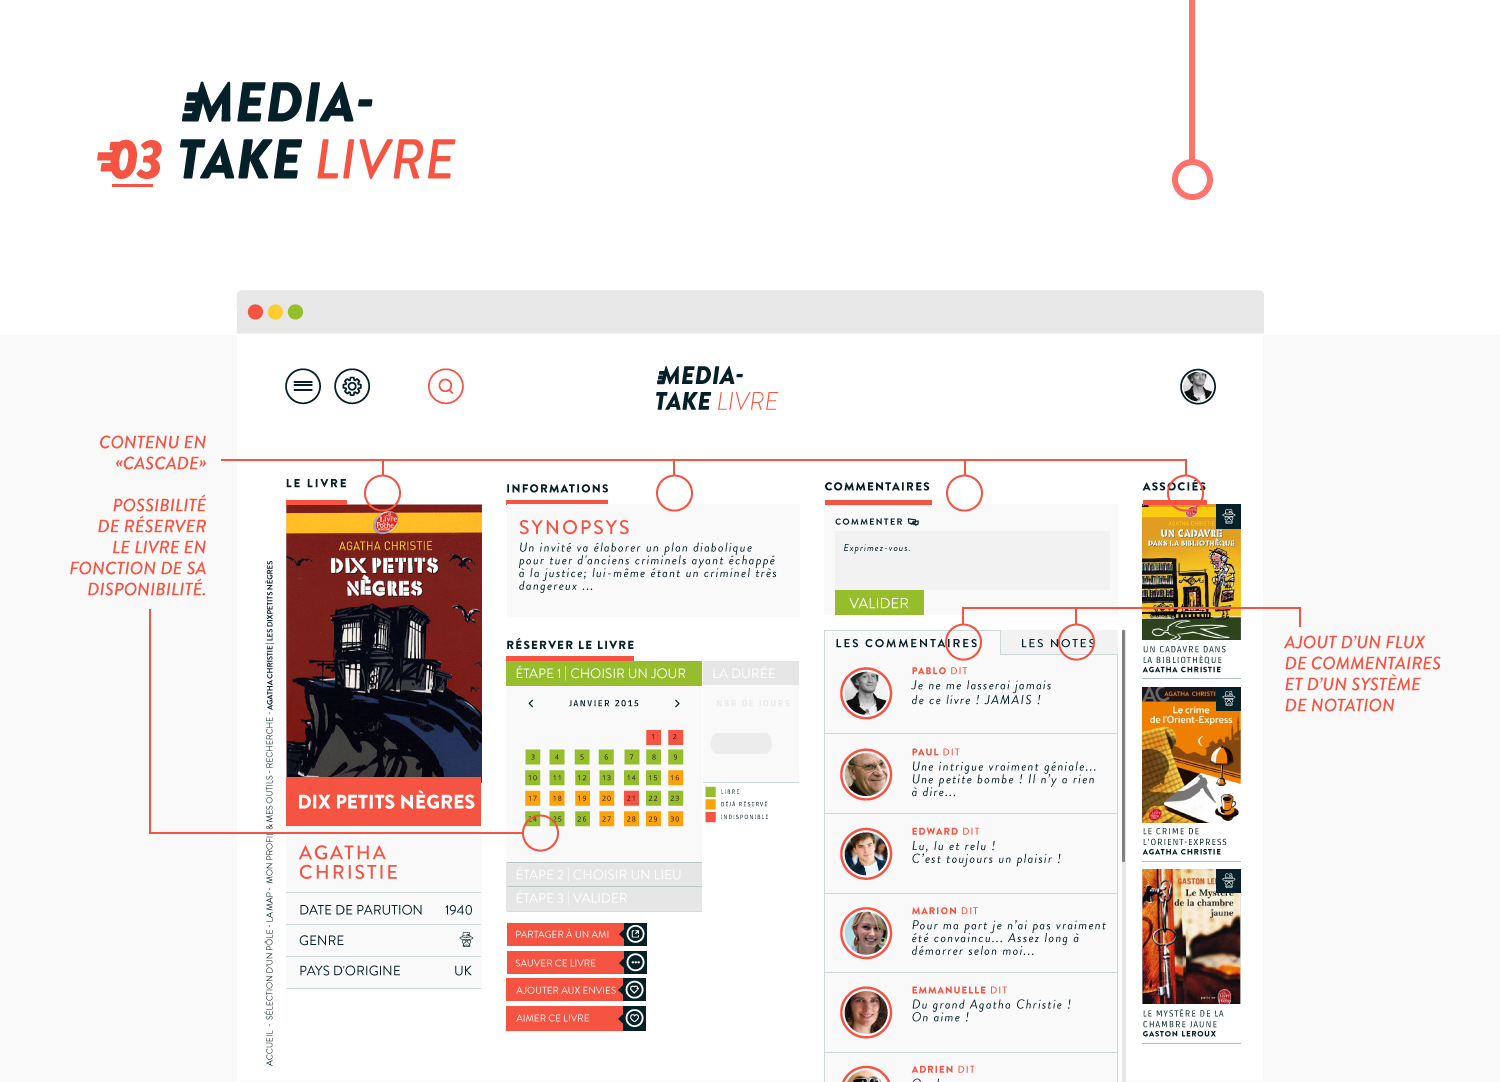 MediaTake - la culture mobile - web livre par Quentin Degrange, designer graphique freelance